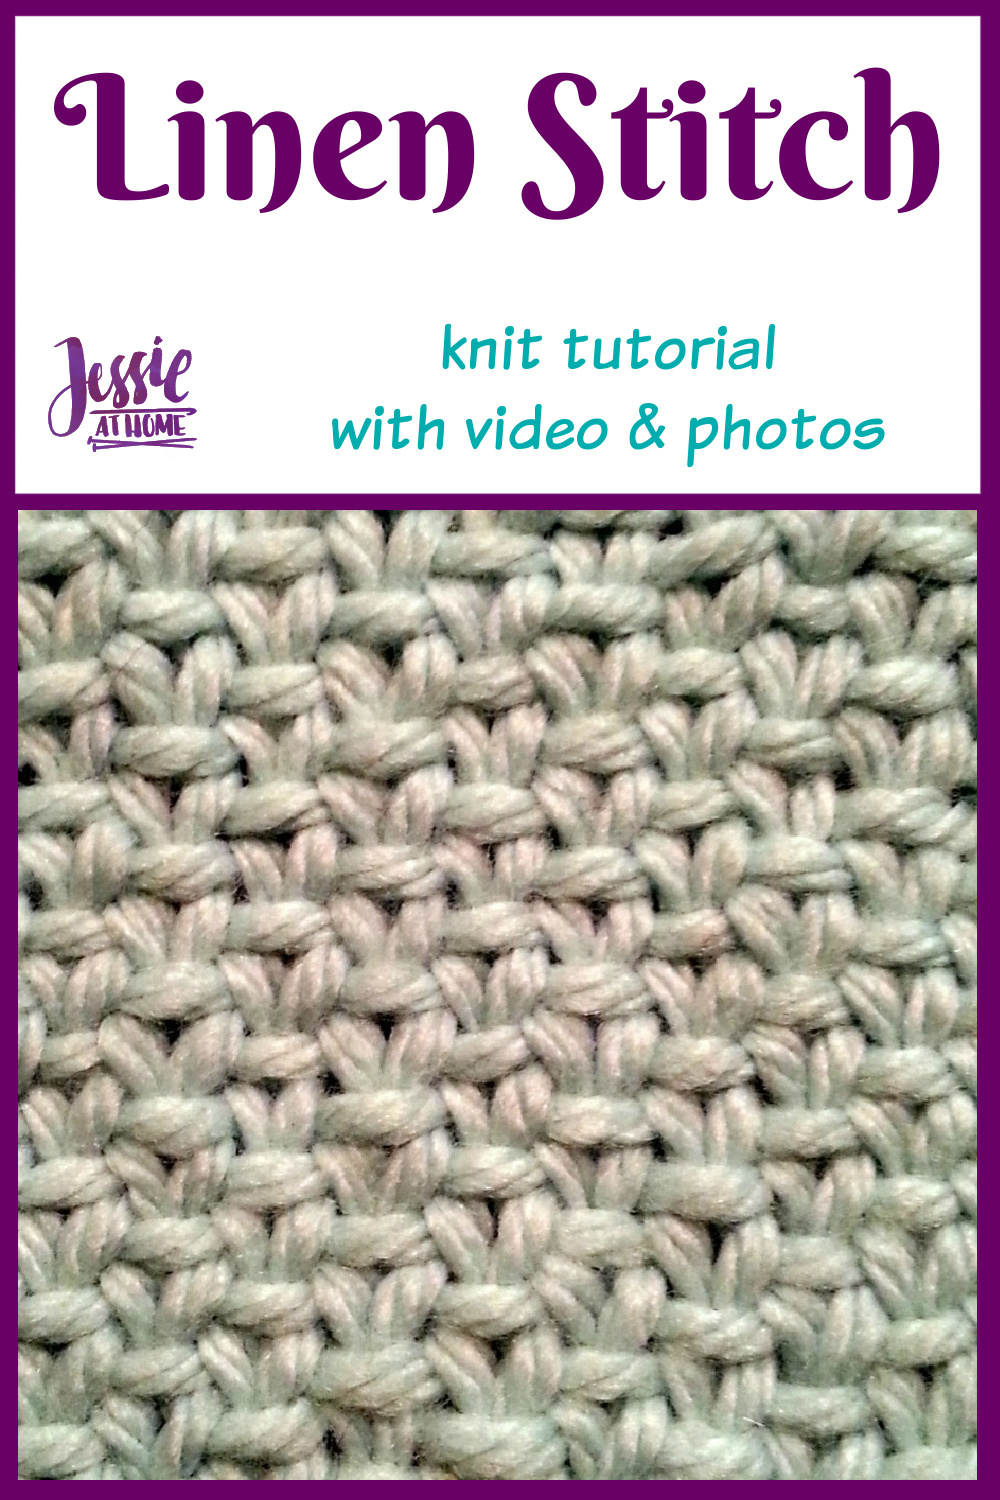 Linen Stitch Tutorial with Video